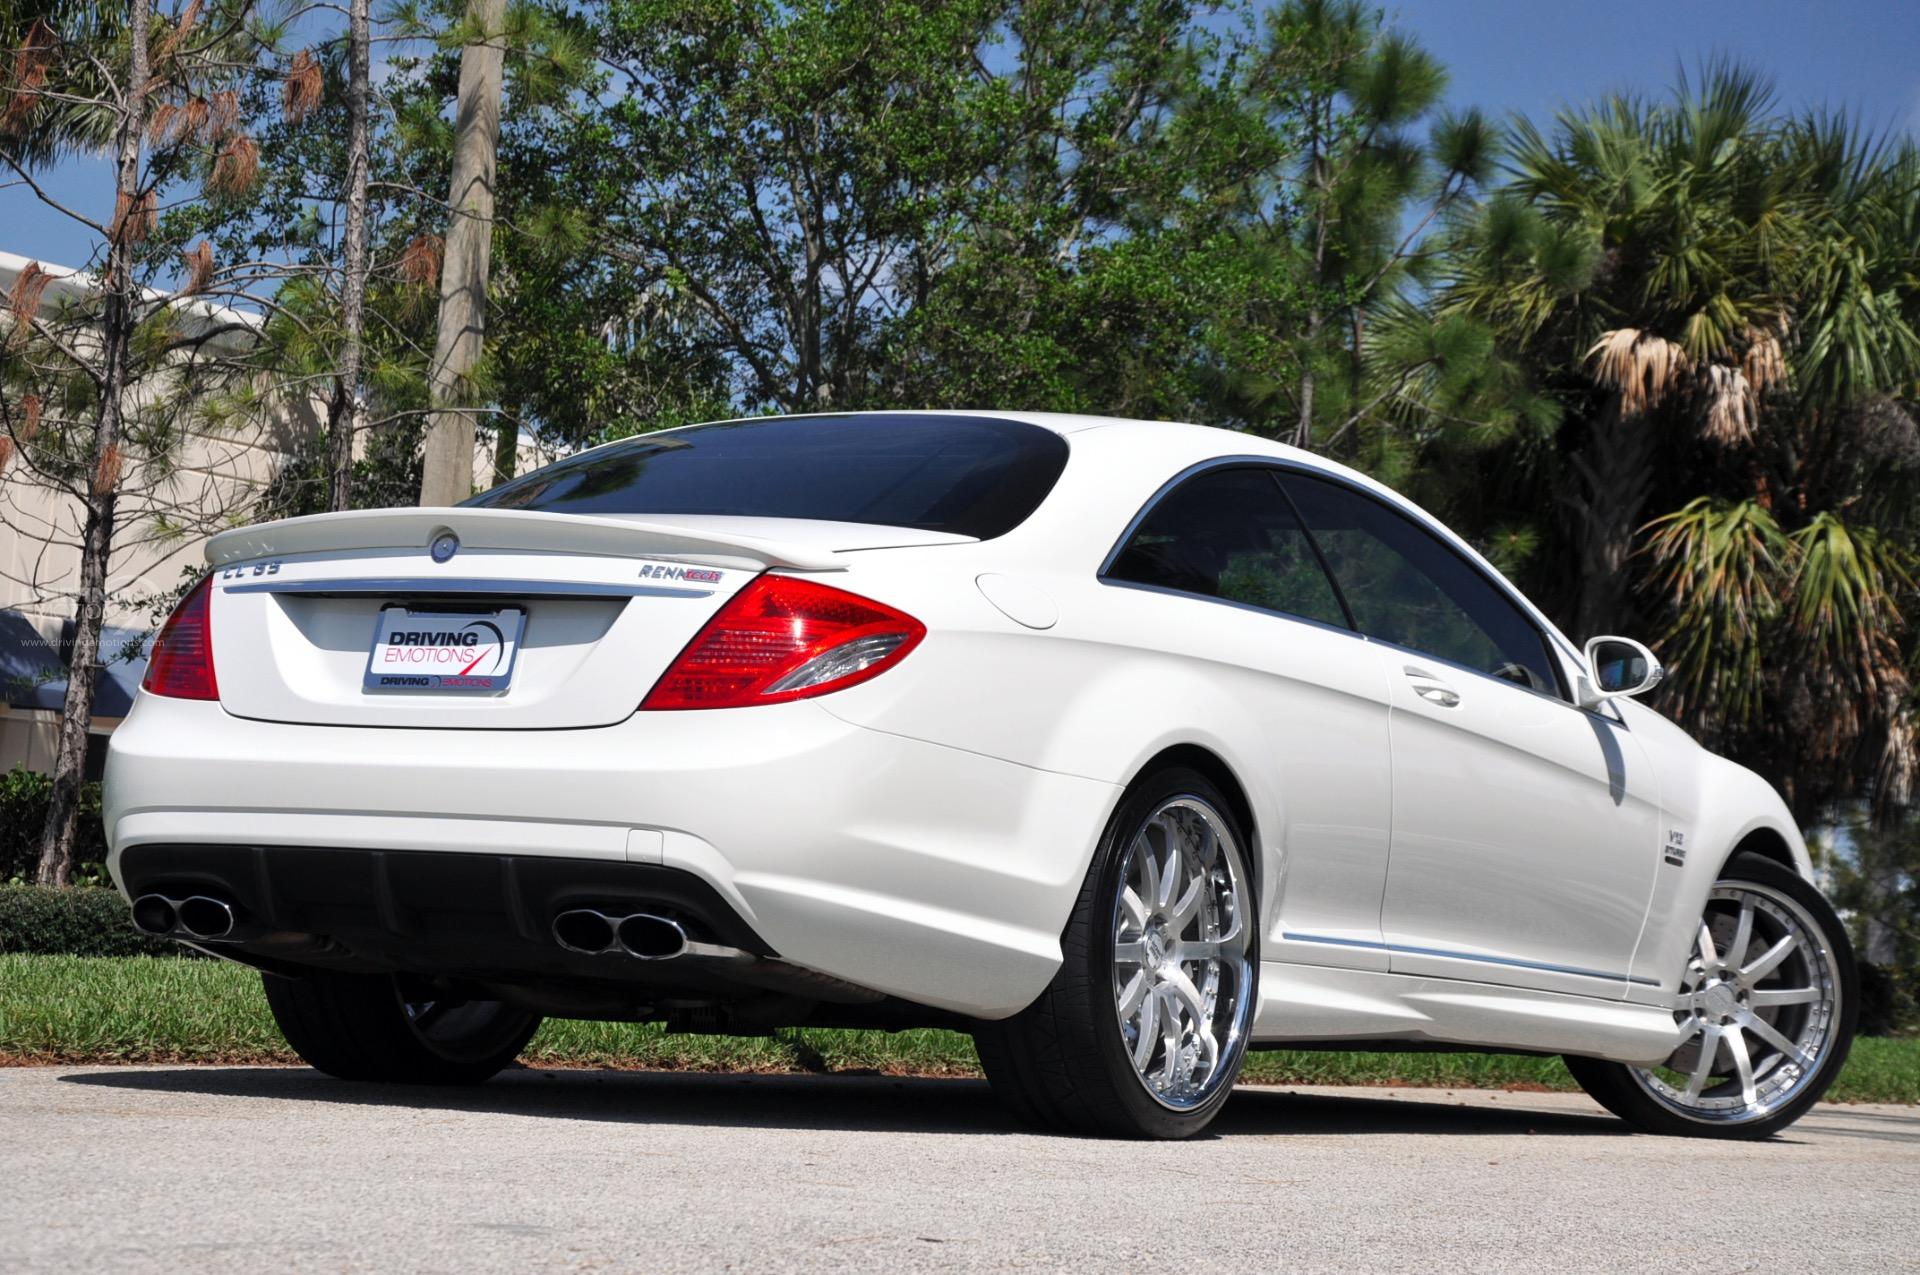 Used 2008 mercedes benz cl65 amg renntech 65 renntech lake park fl